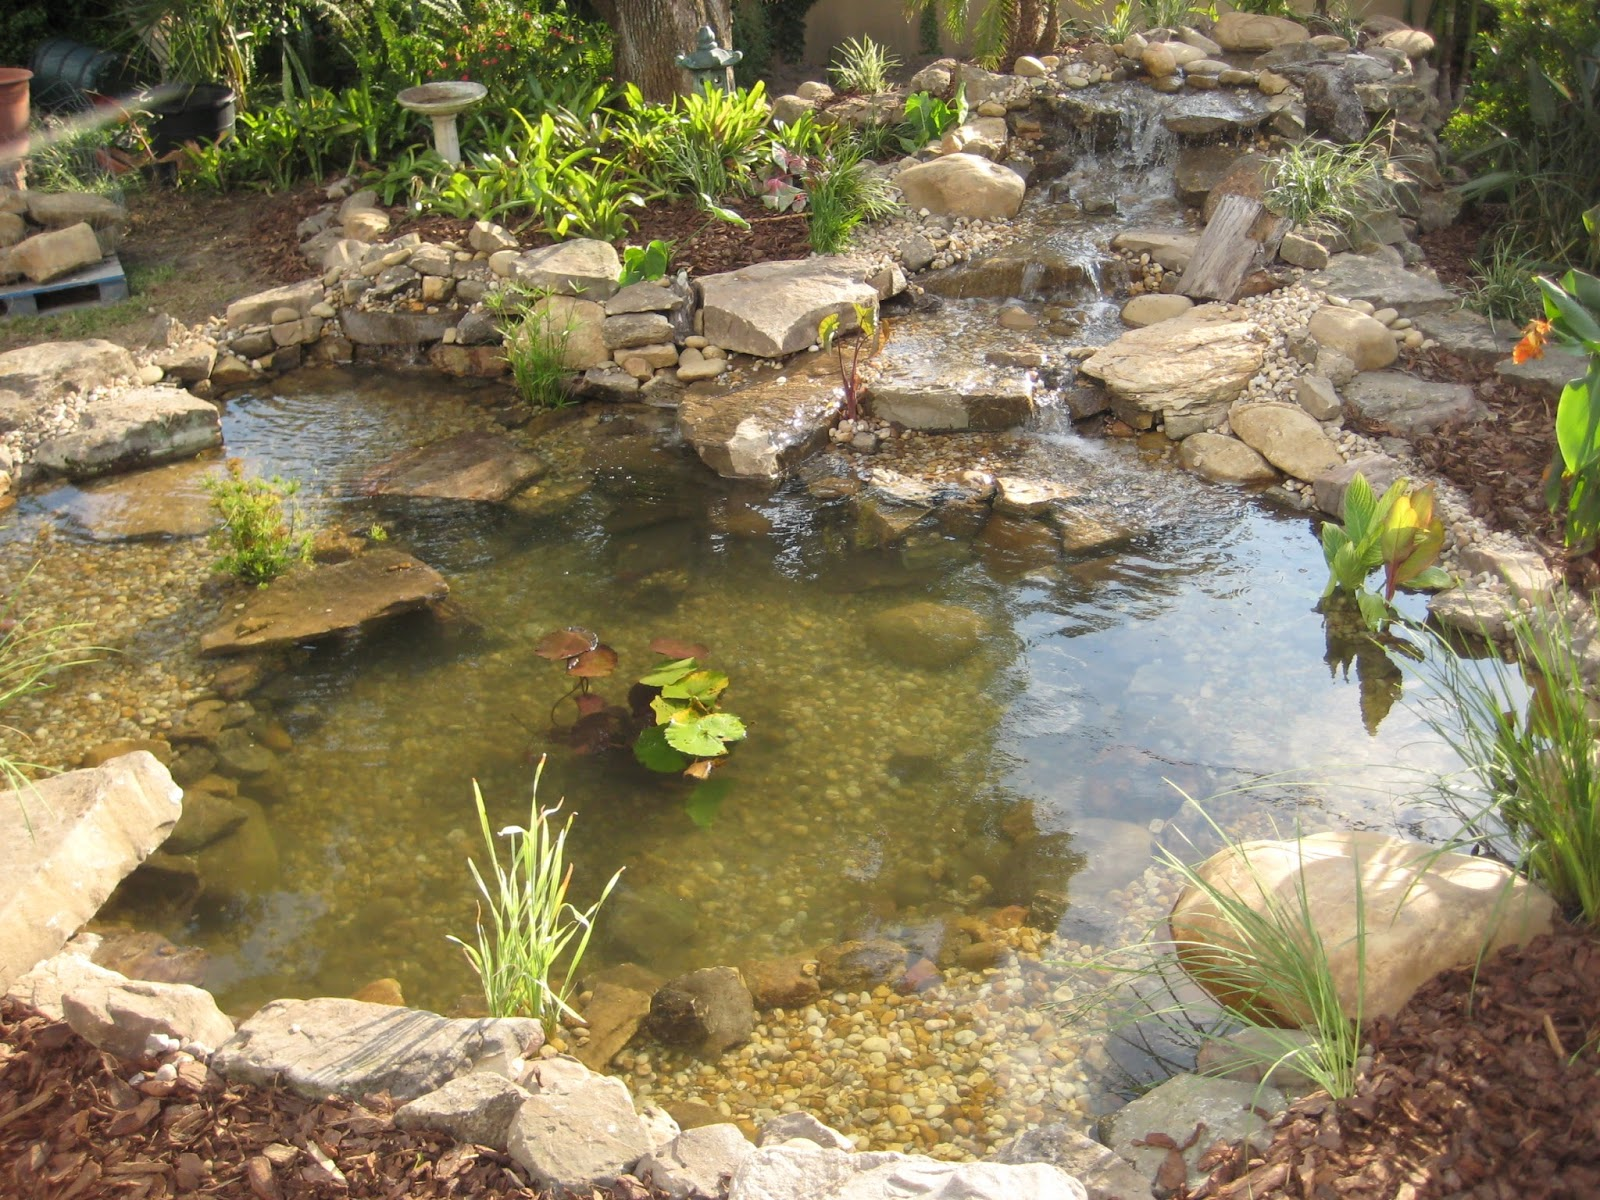 Lovely Ecosystem Ponds Can Be Easy To Understand, At Pondtastic Water Gardens, We  Have Complete Knowledge Of What Components Go Into A Basic, ...